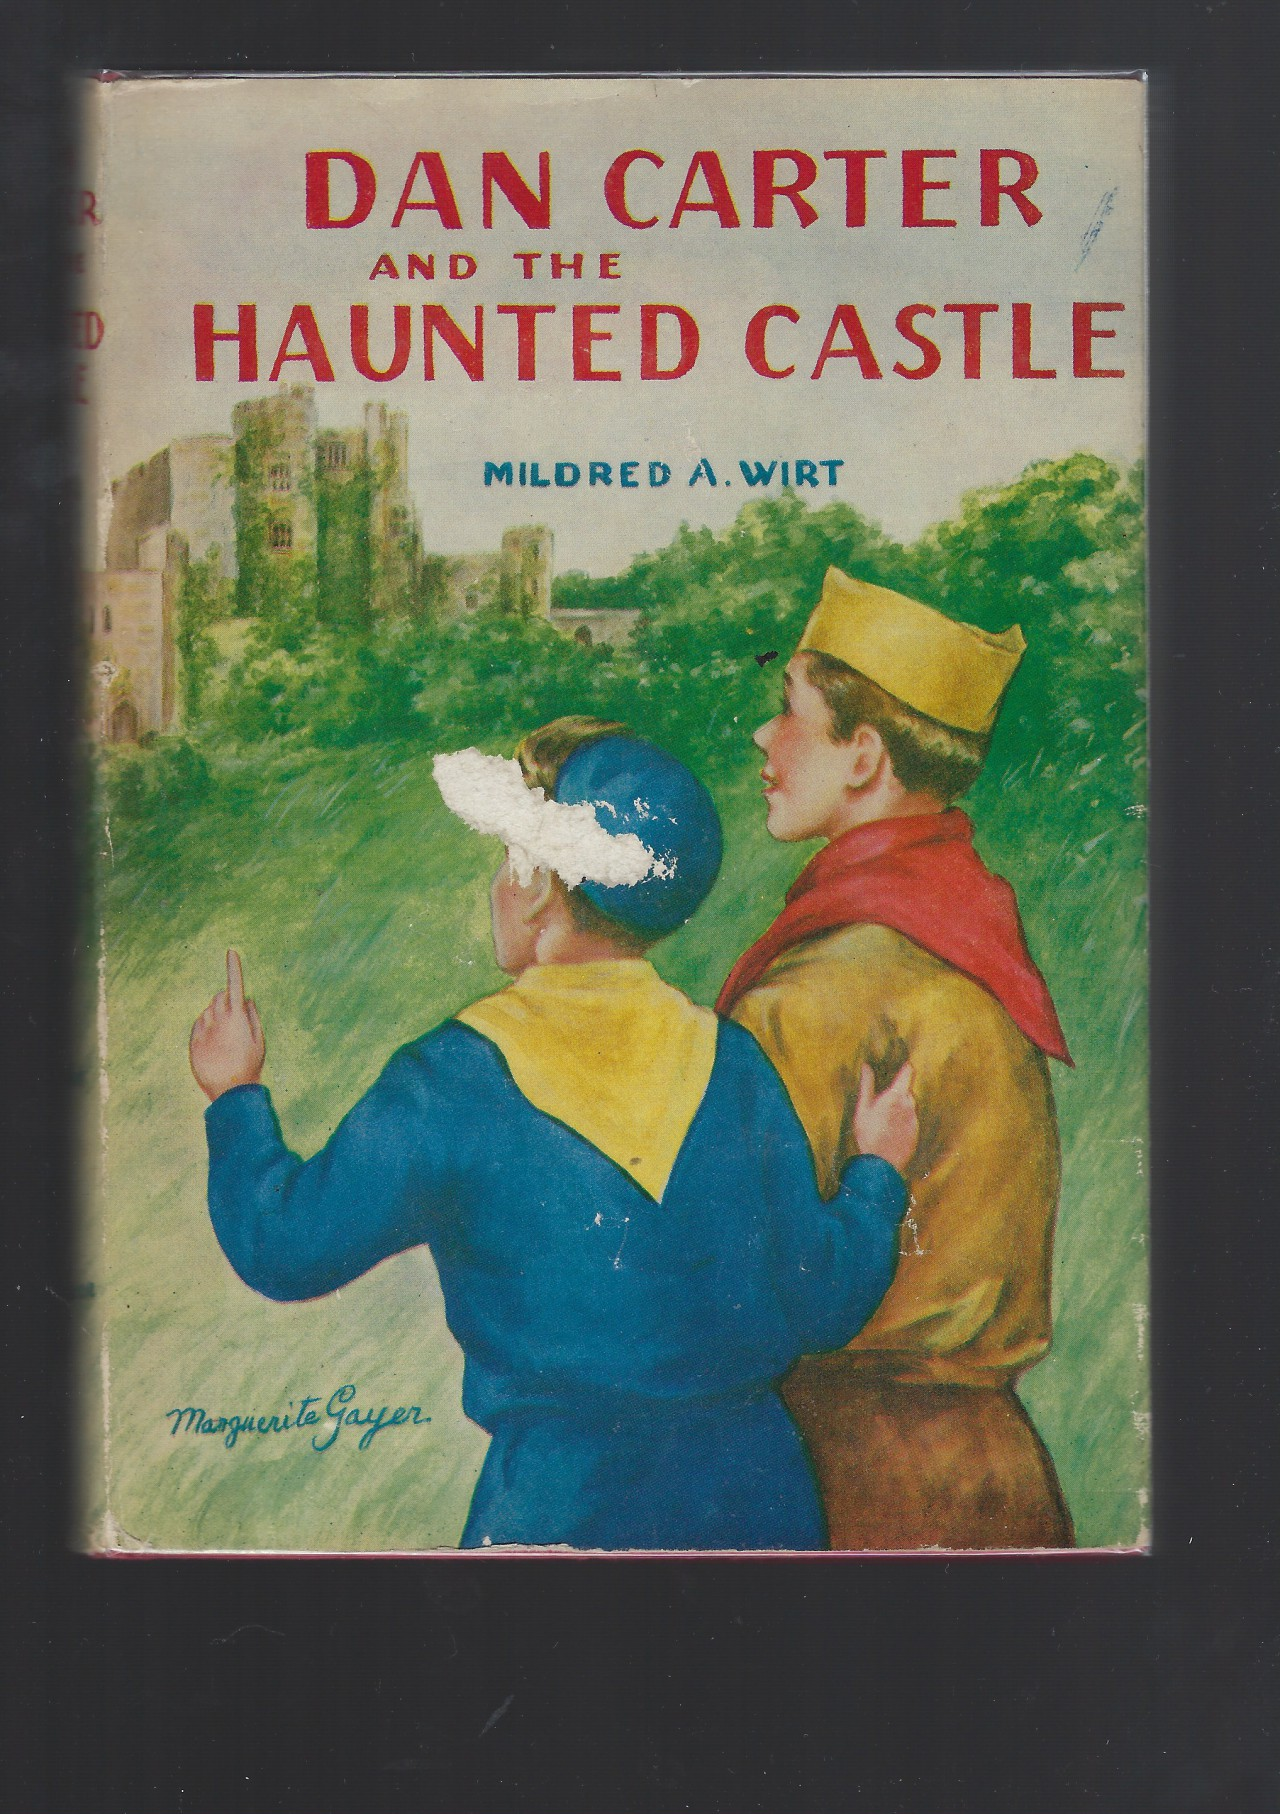 Image for Dan Carter and the Haunted Castle #4 HB/DJ Mildred Wirt Nancy Drew Author